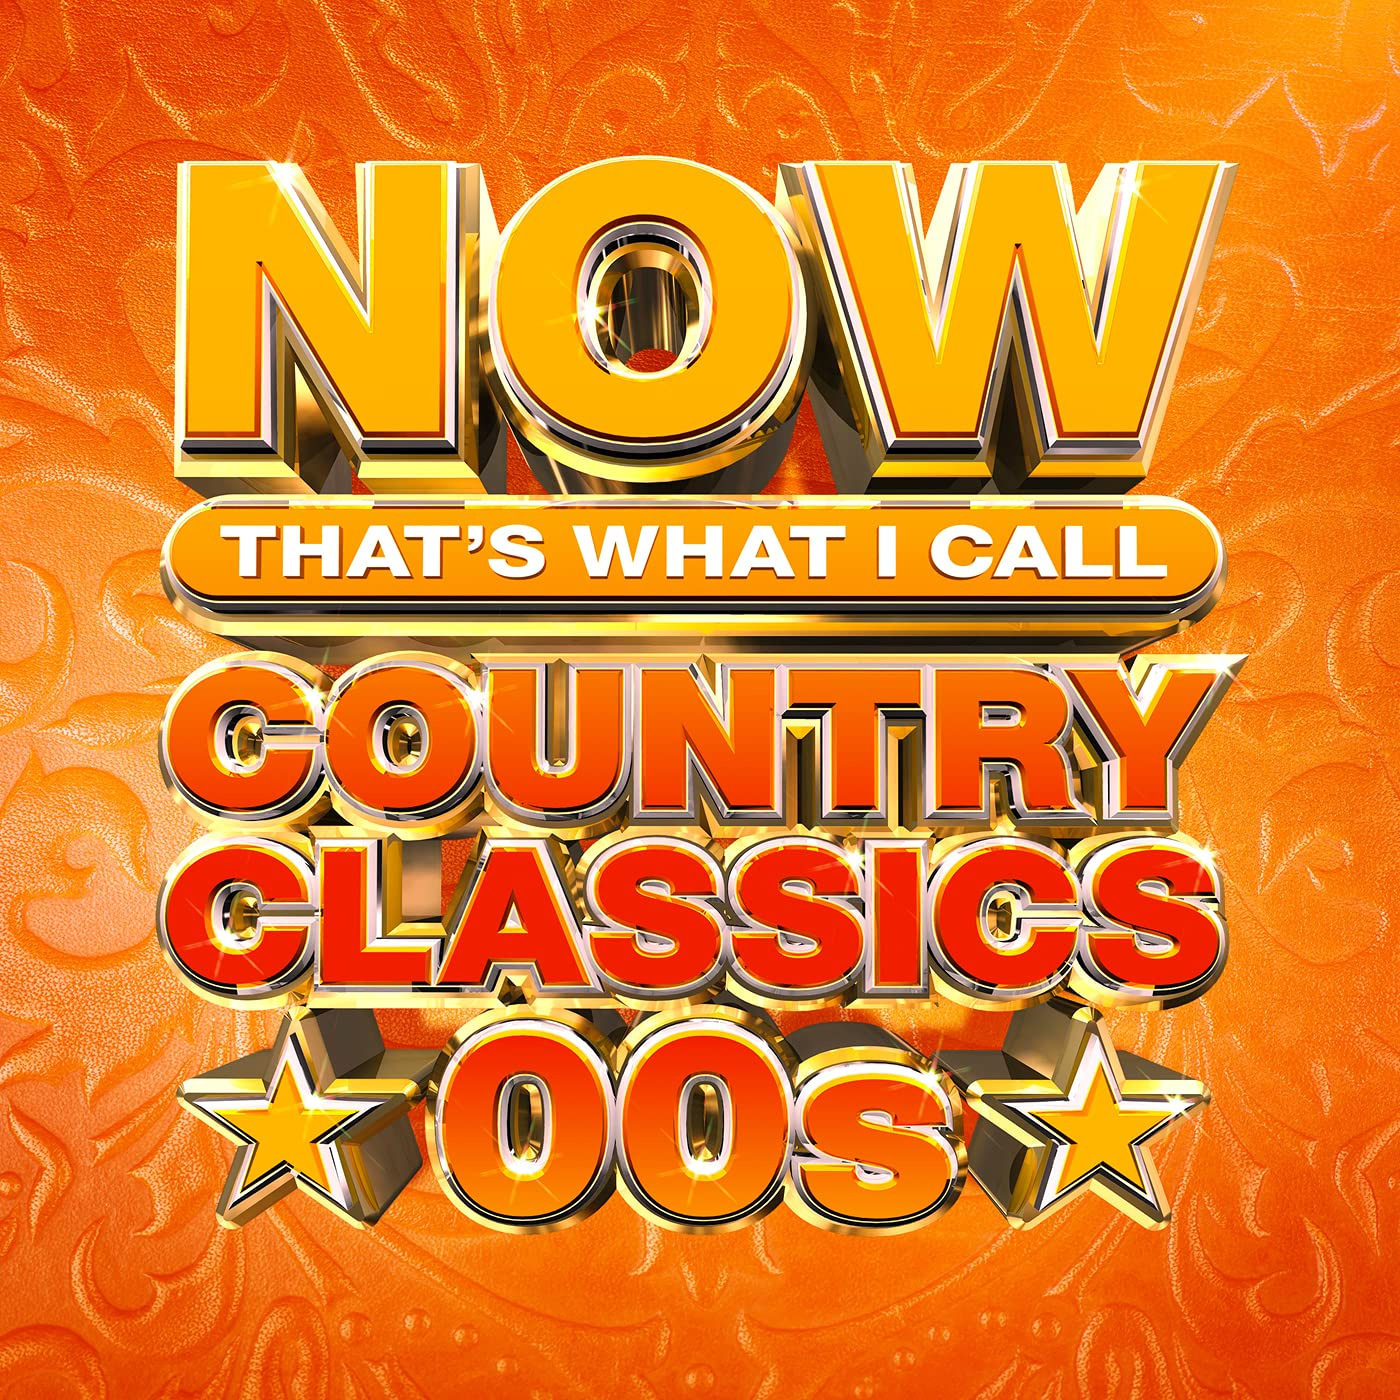 VA – That's What I Call Country Classics 00s (2021) [FLAC]